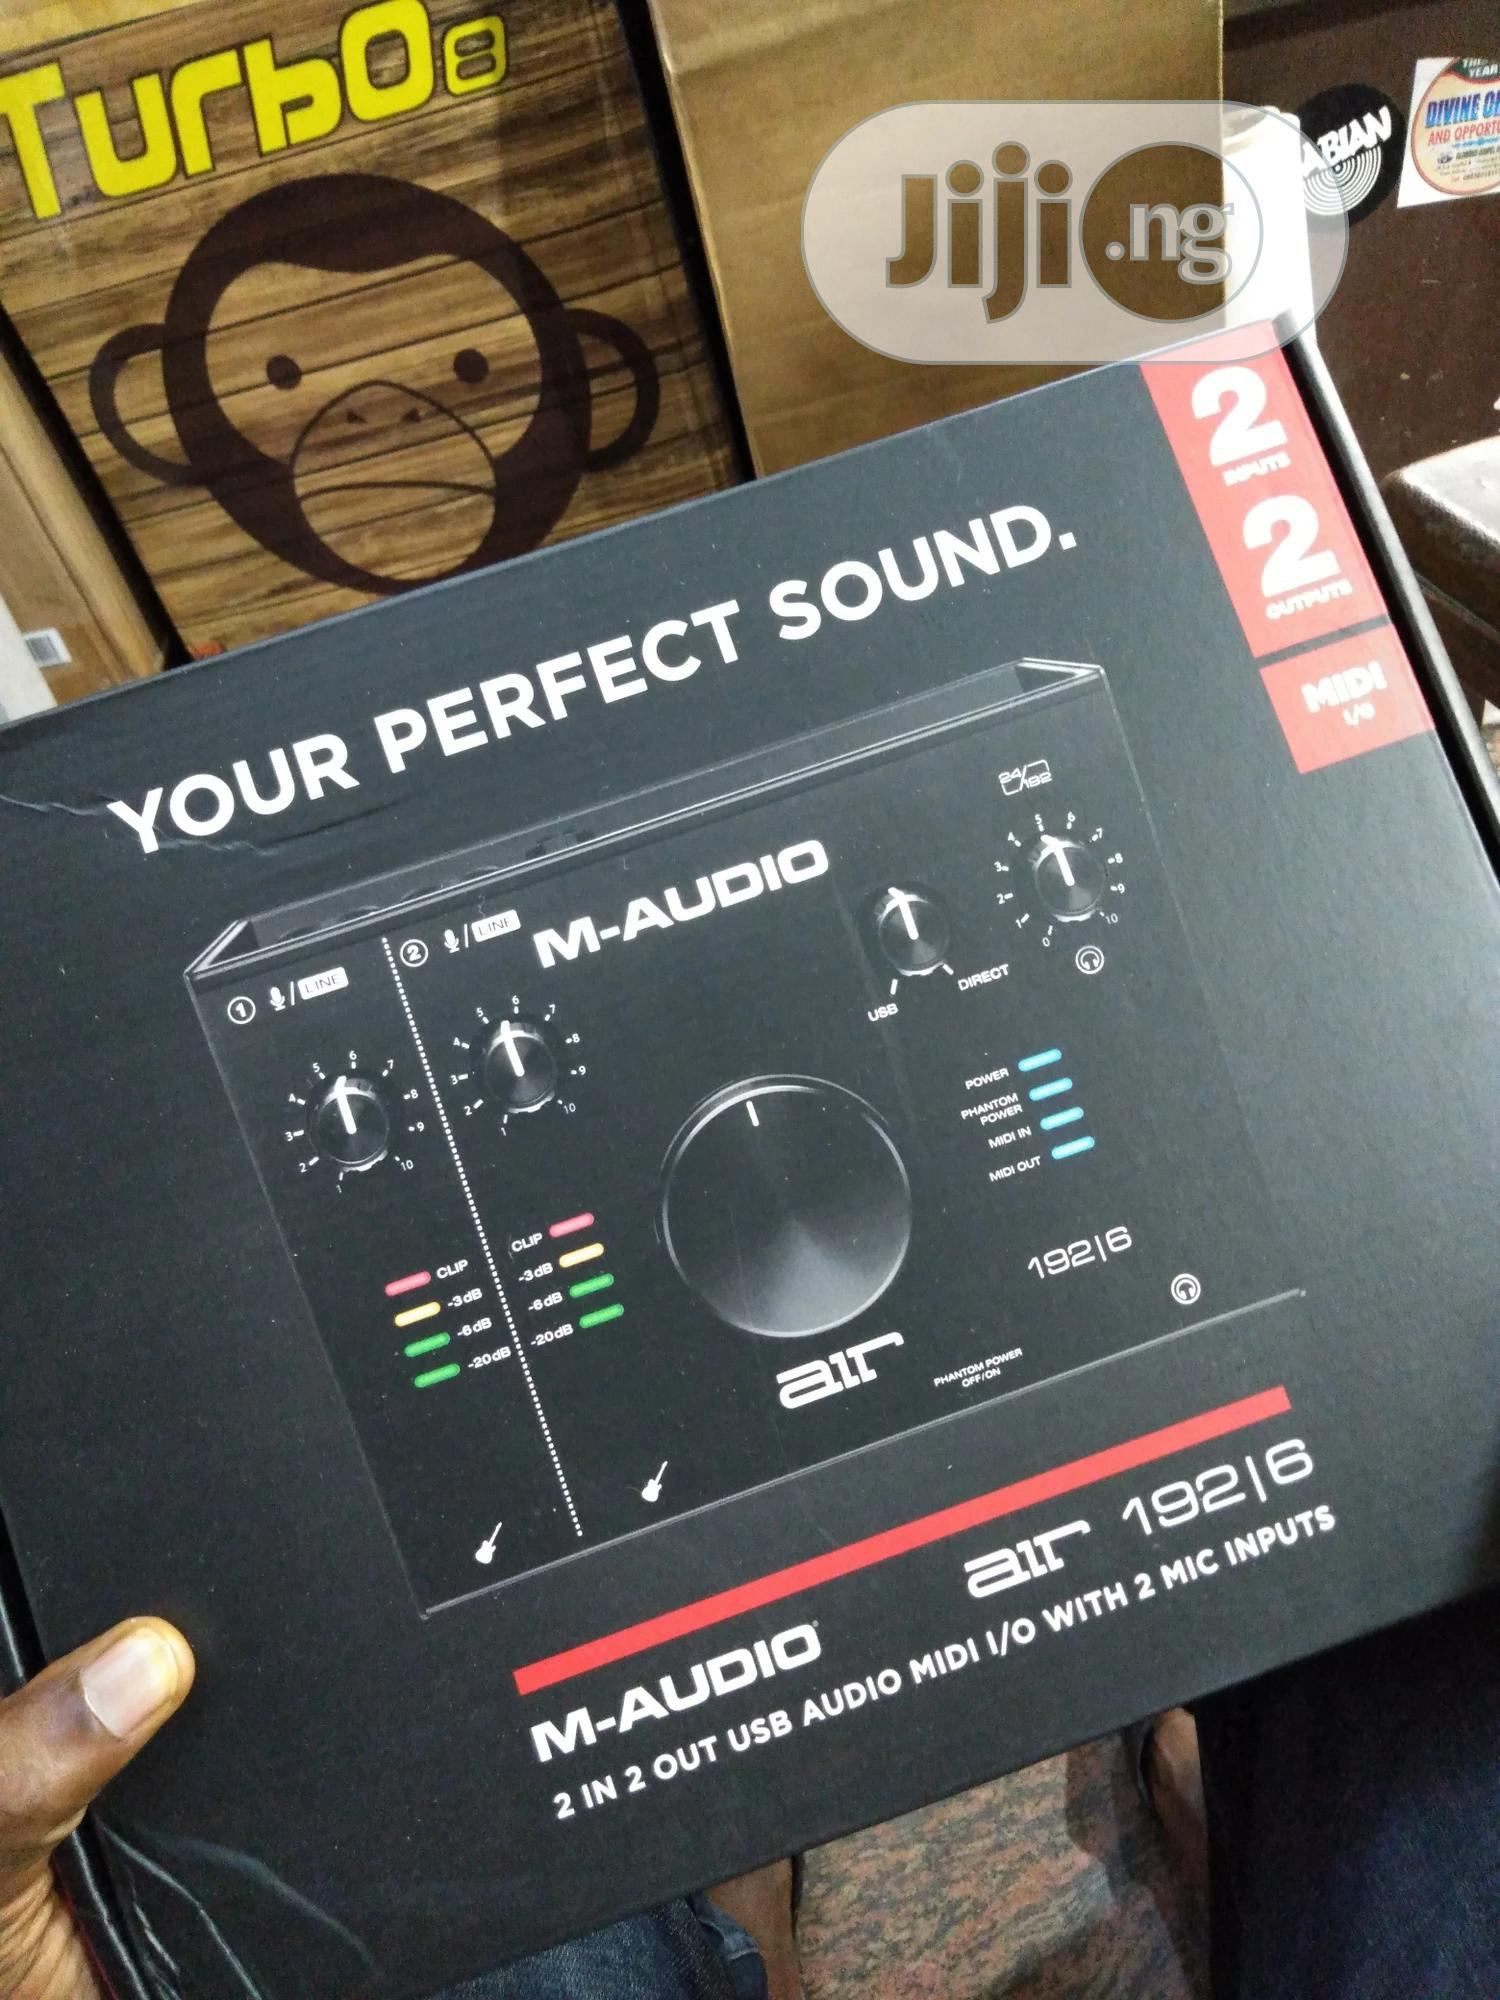 M-Audio Air 192/6 Sound Card